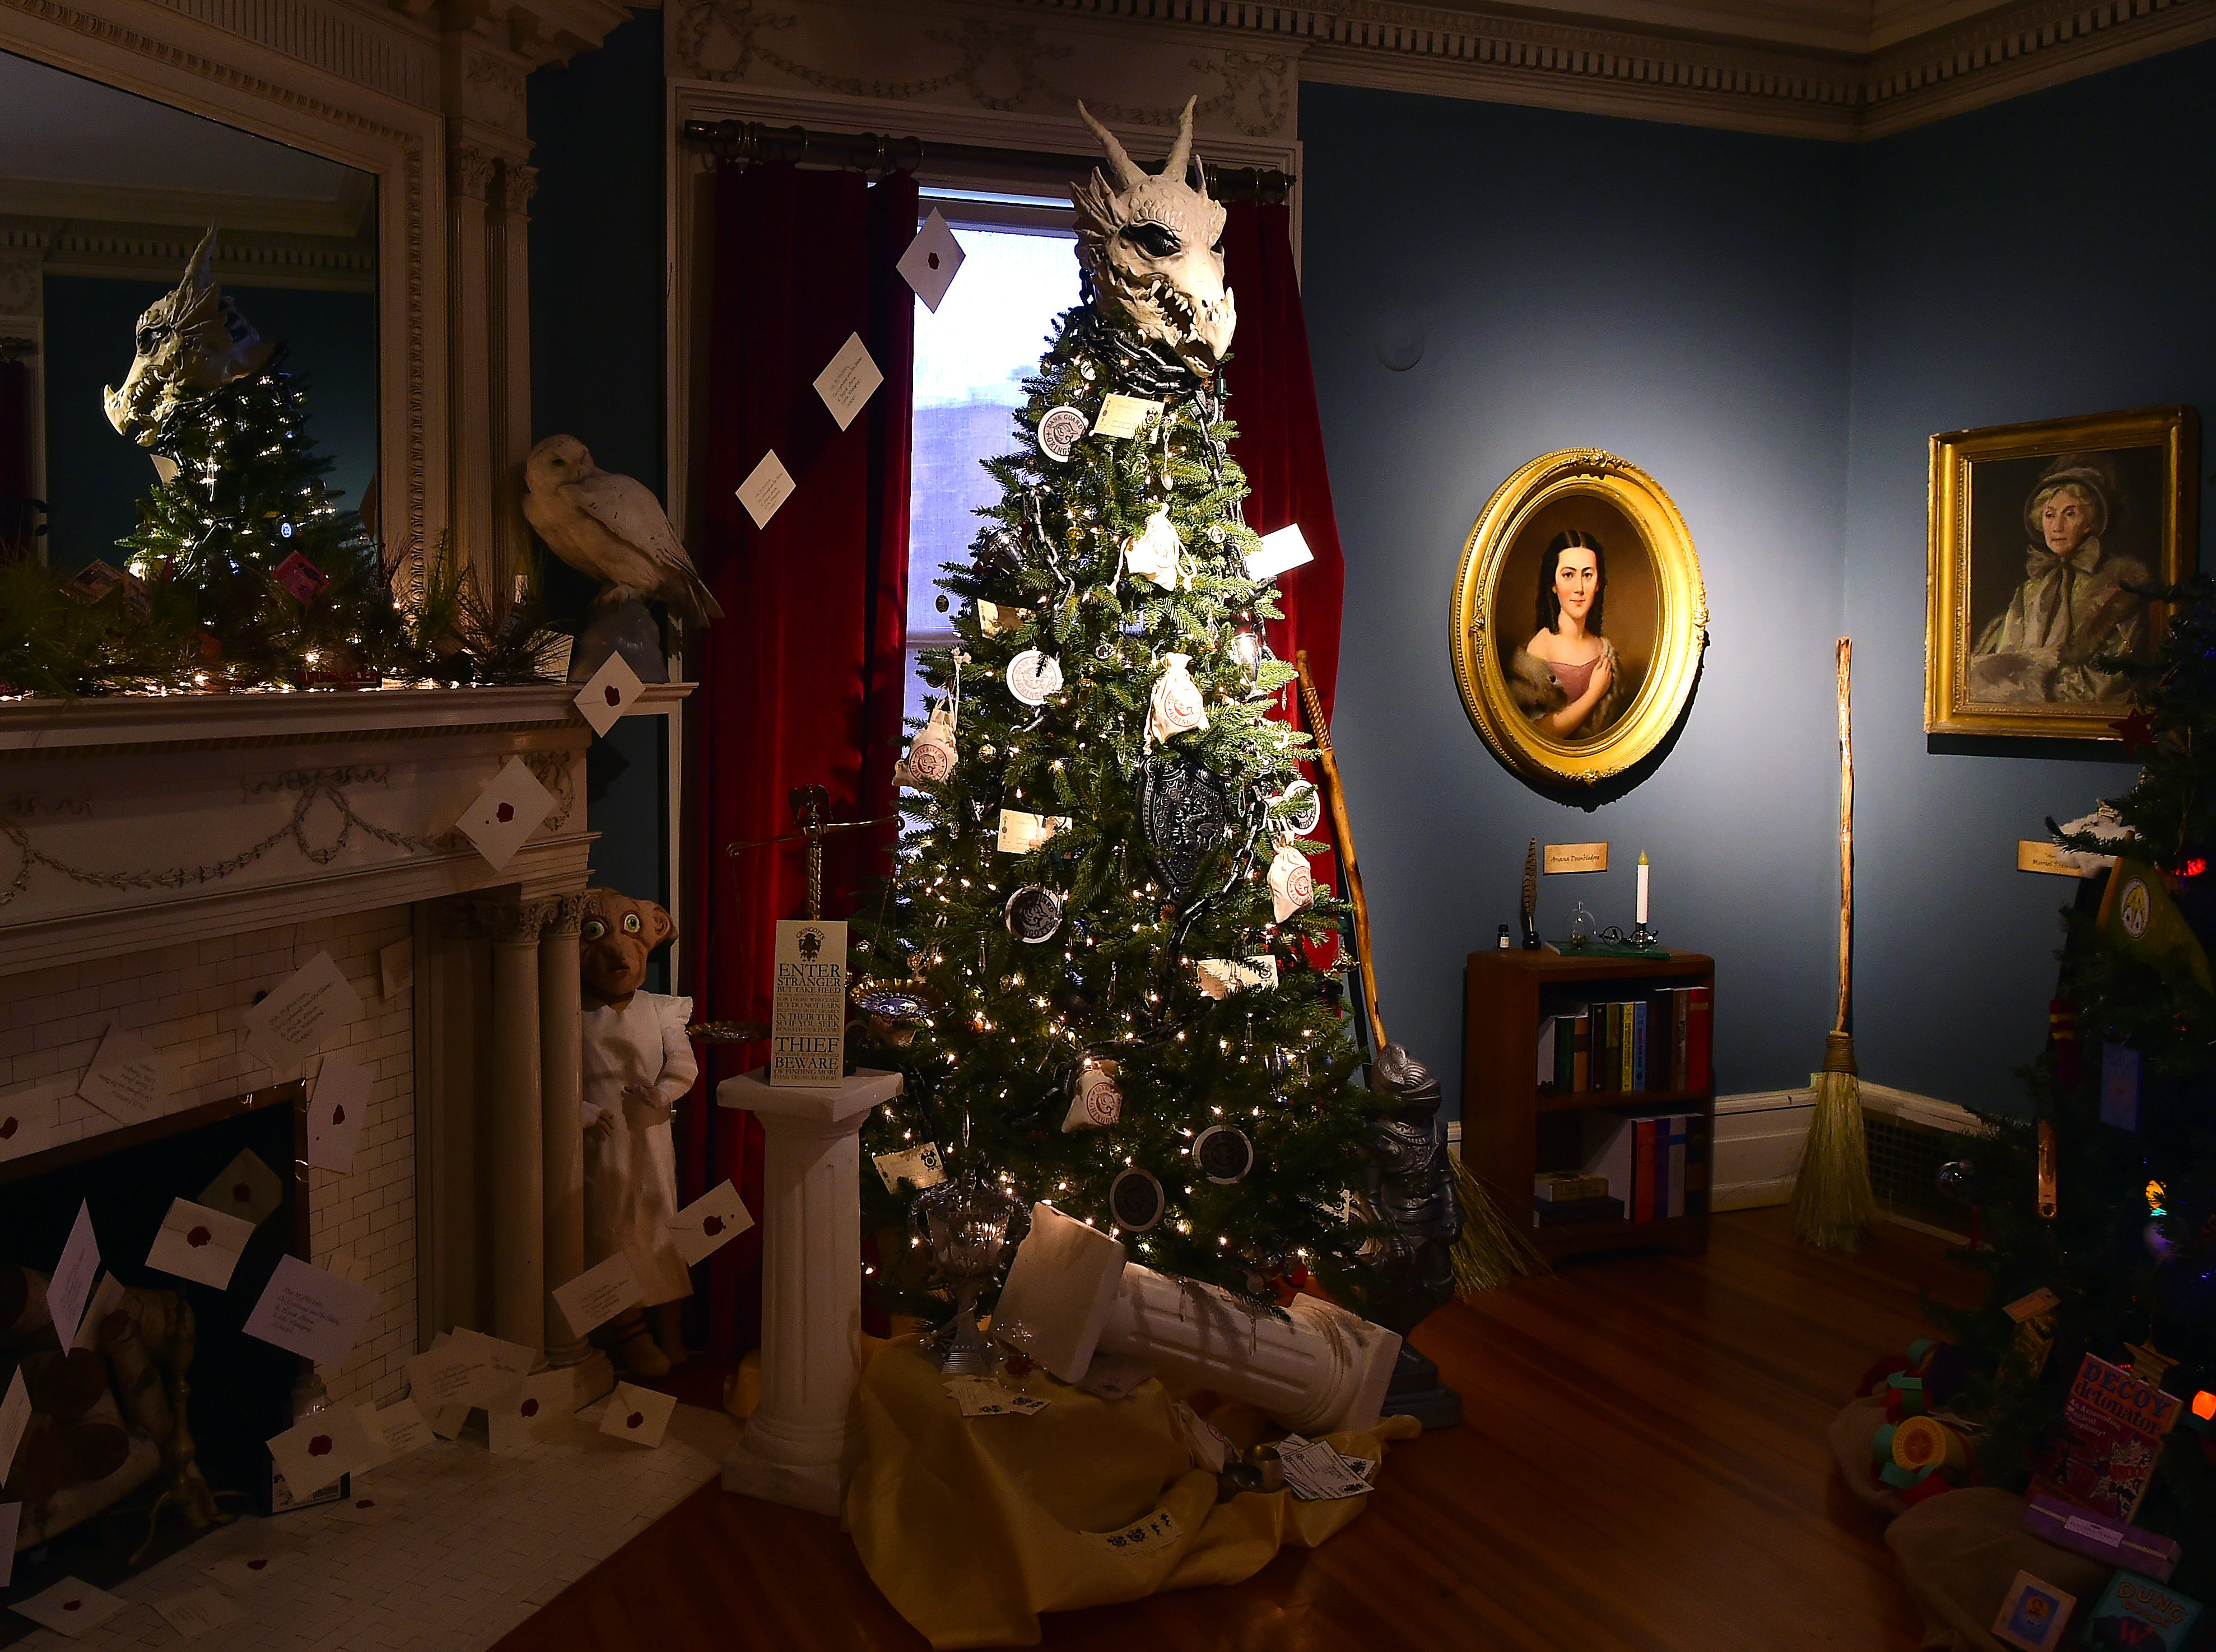 A room featuring Harry Potter trees and decorations, decorated by the Grasso family. Roberson Museum and Science Center's annual Home for the Holidays event opens on November 14 and continues through January 6. The event features hundreds of elaborately decorated holiday trees and displays. November 12, 2018.